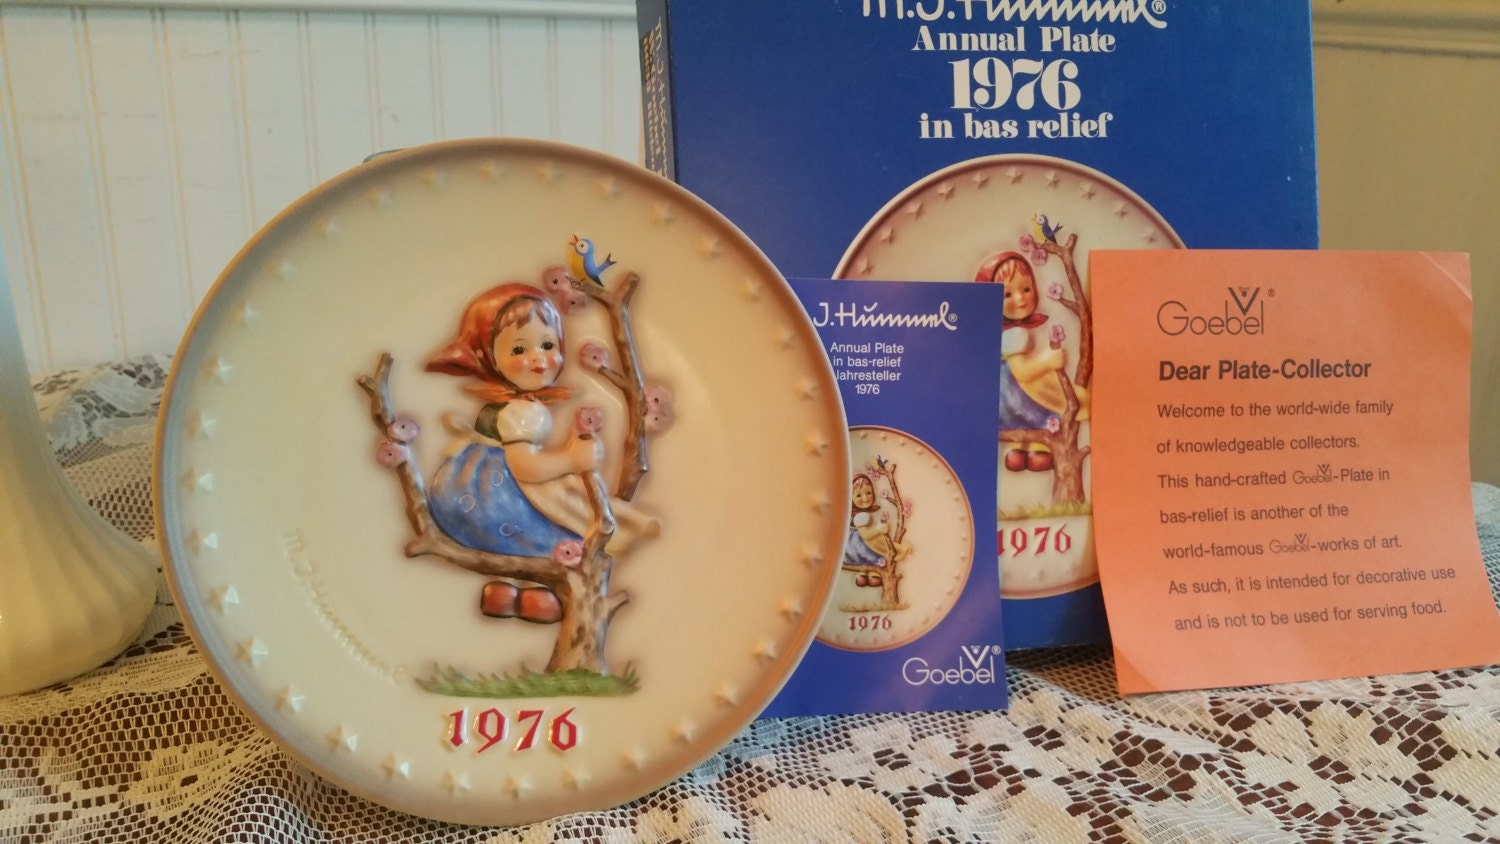 Free us shipping vintage 1976 hummel annual plate apple tree girl hand painted 7 5 inch goebel hum 269 6th edition